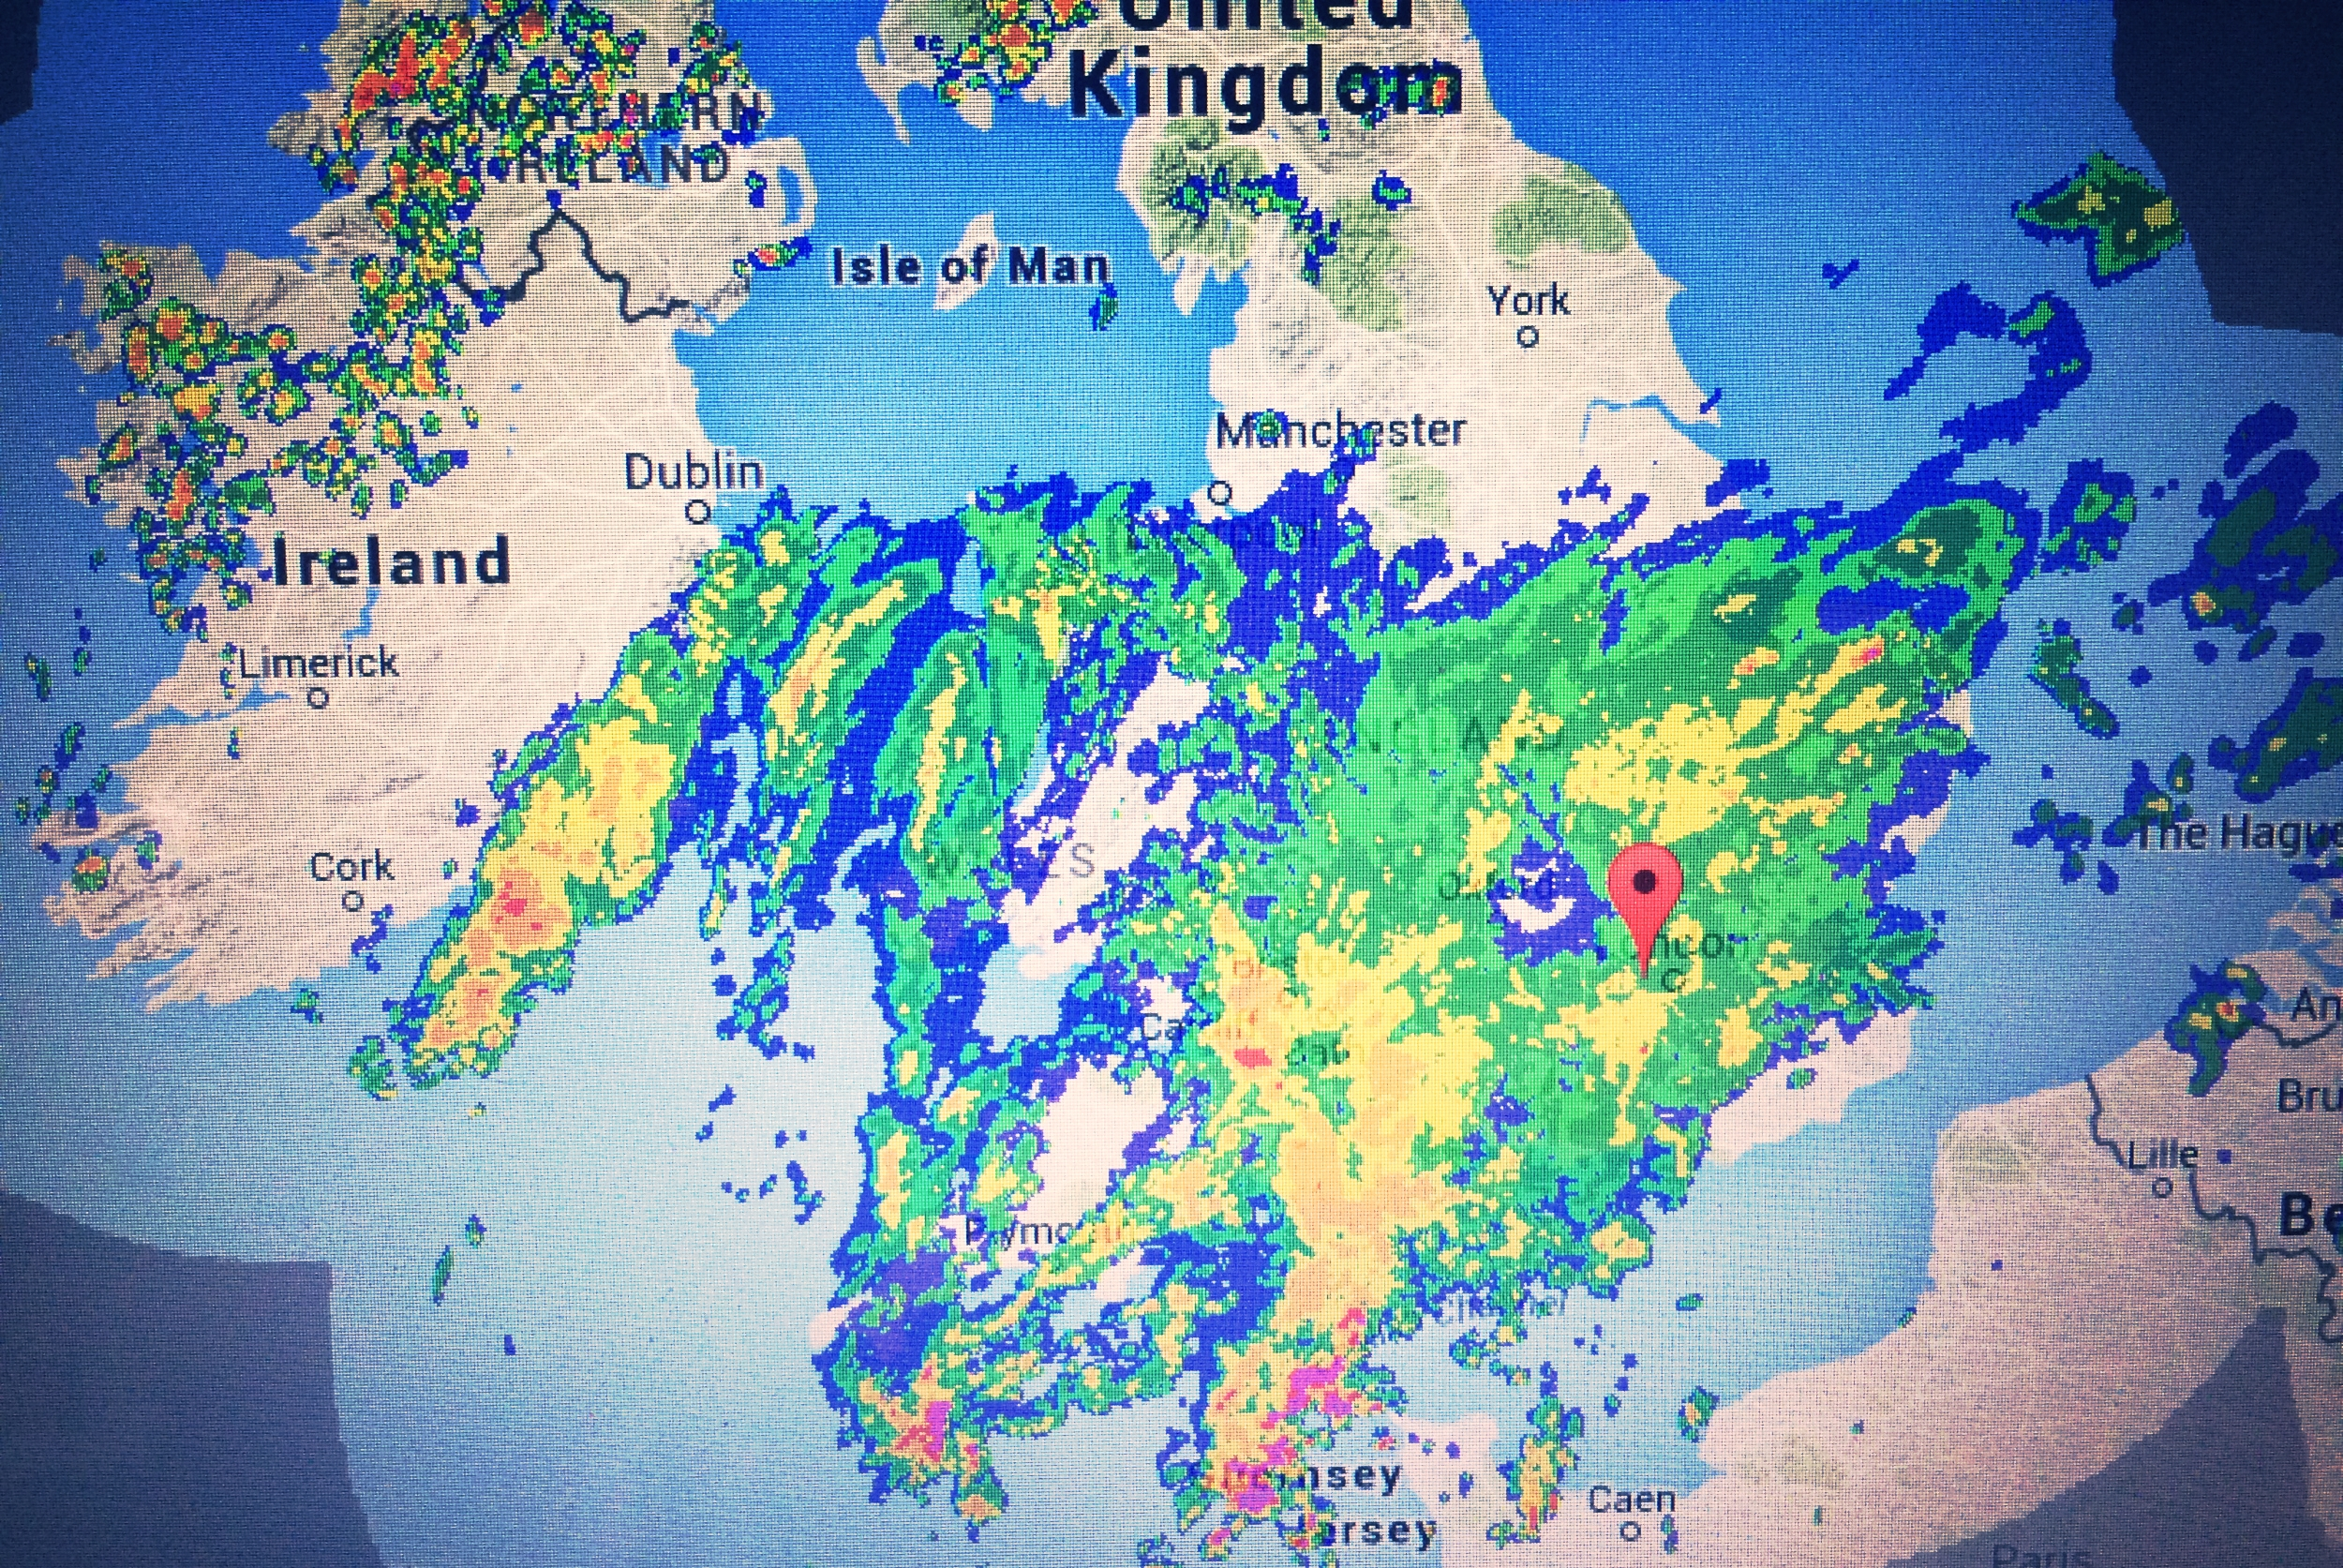 The weather radar before departing